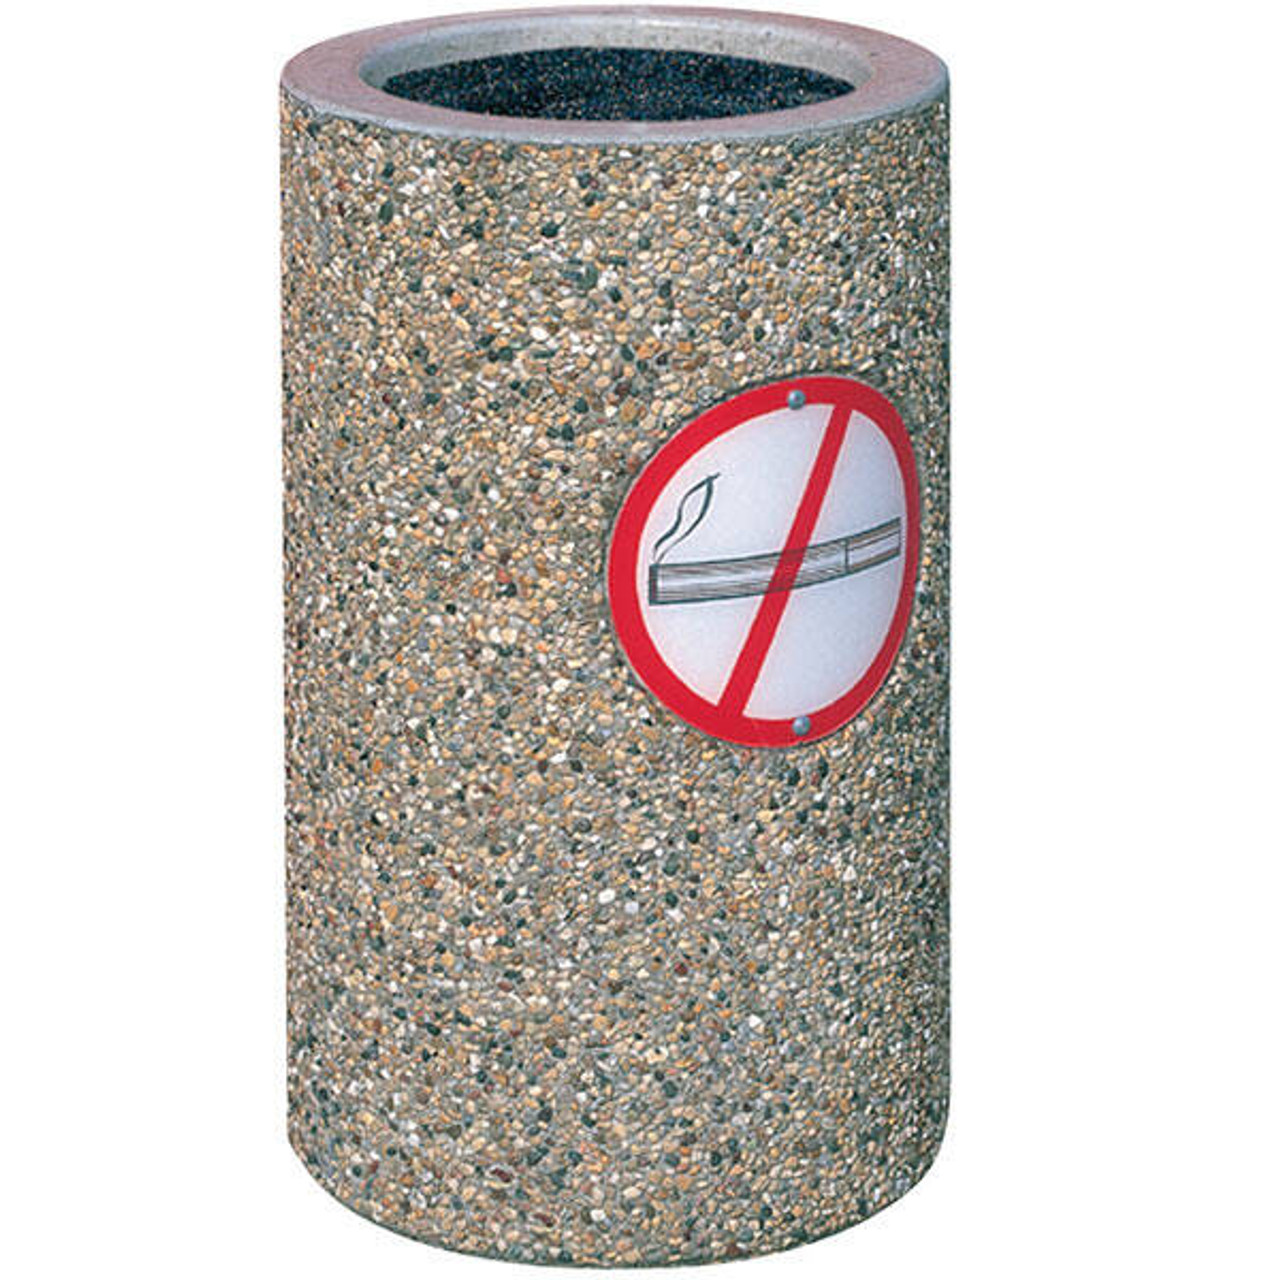 Concrete Ash Urn Outdoor Ashtray TF2005 with No Smoking Logo Exposed Aggregate